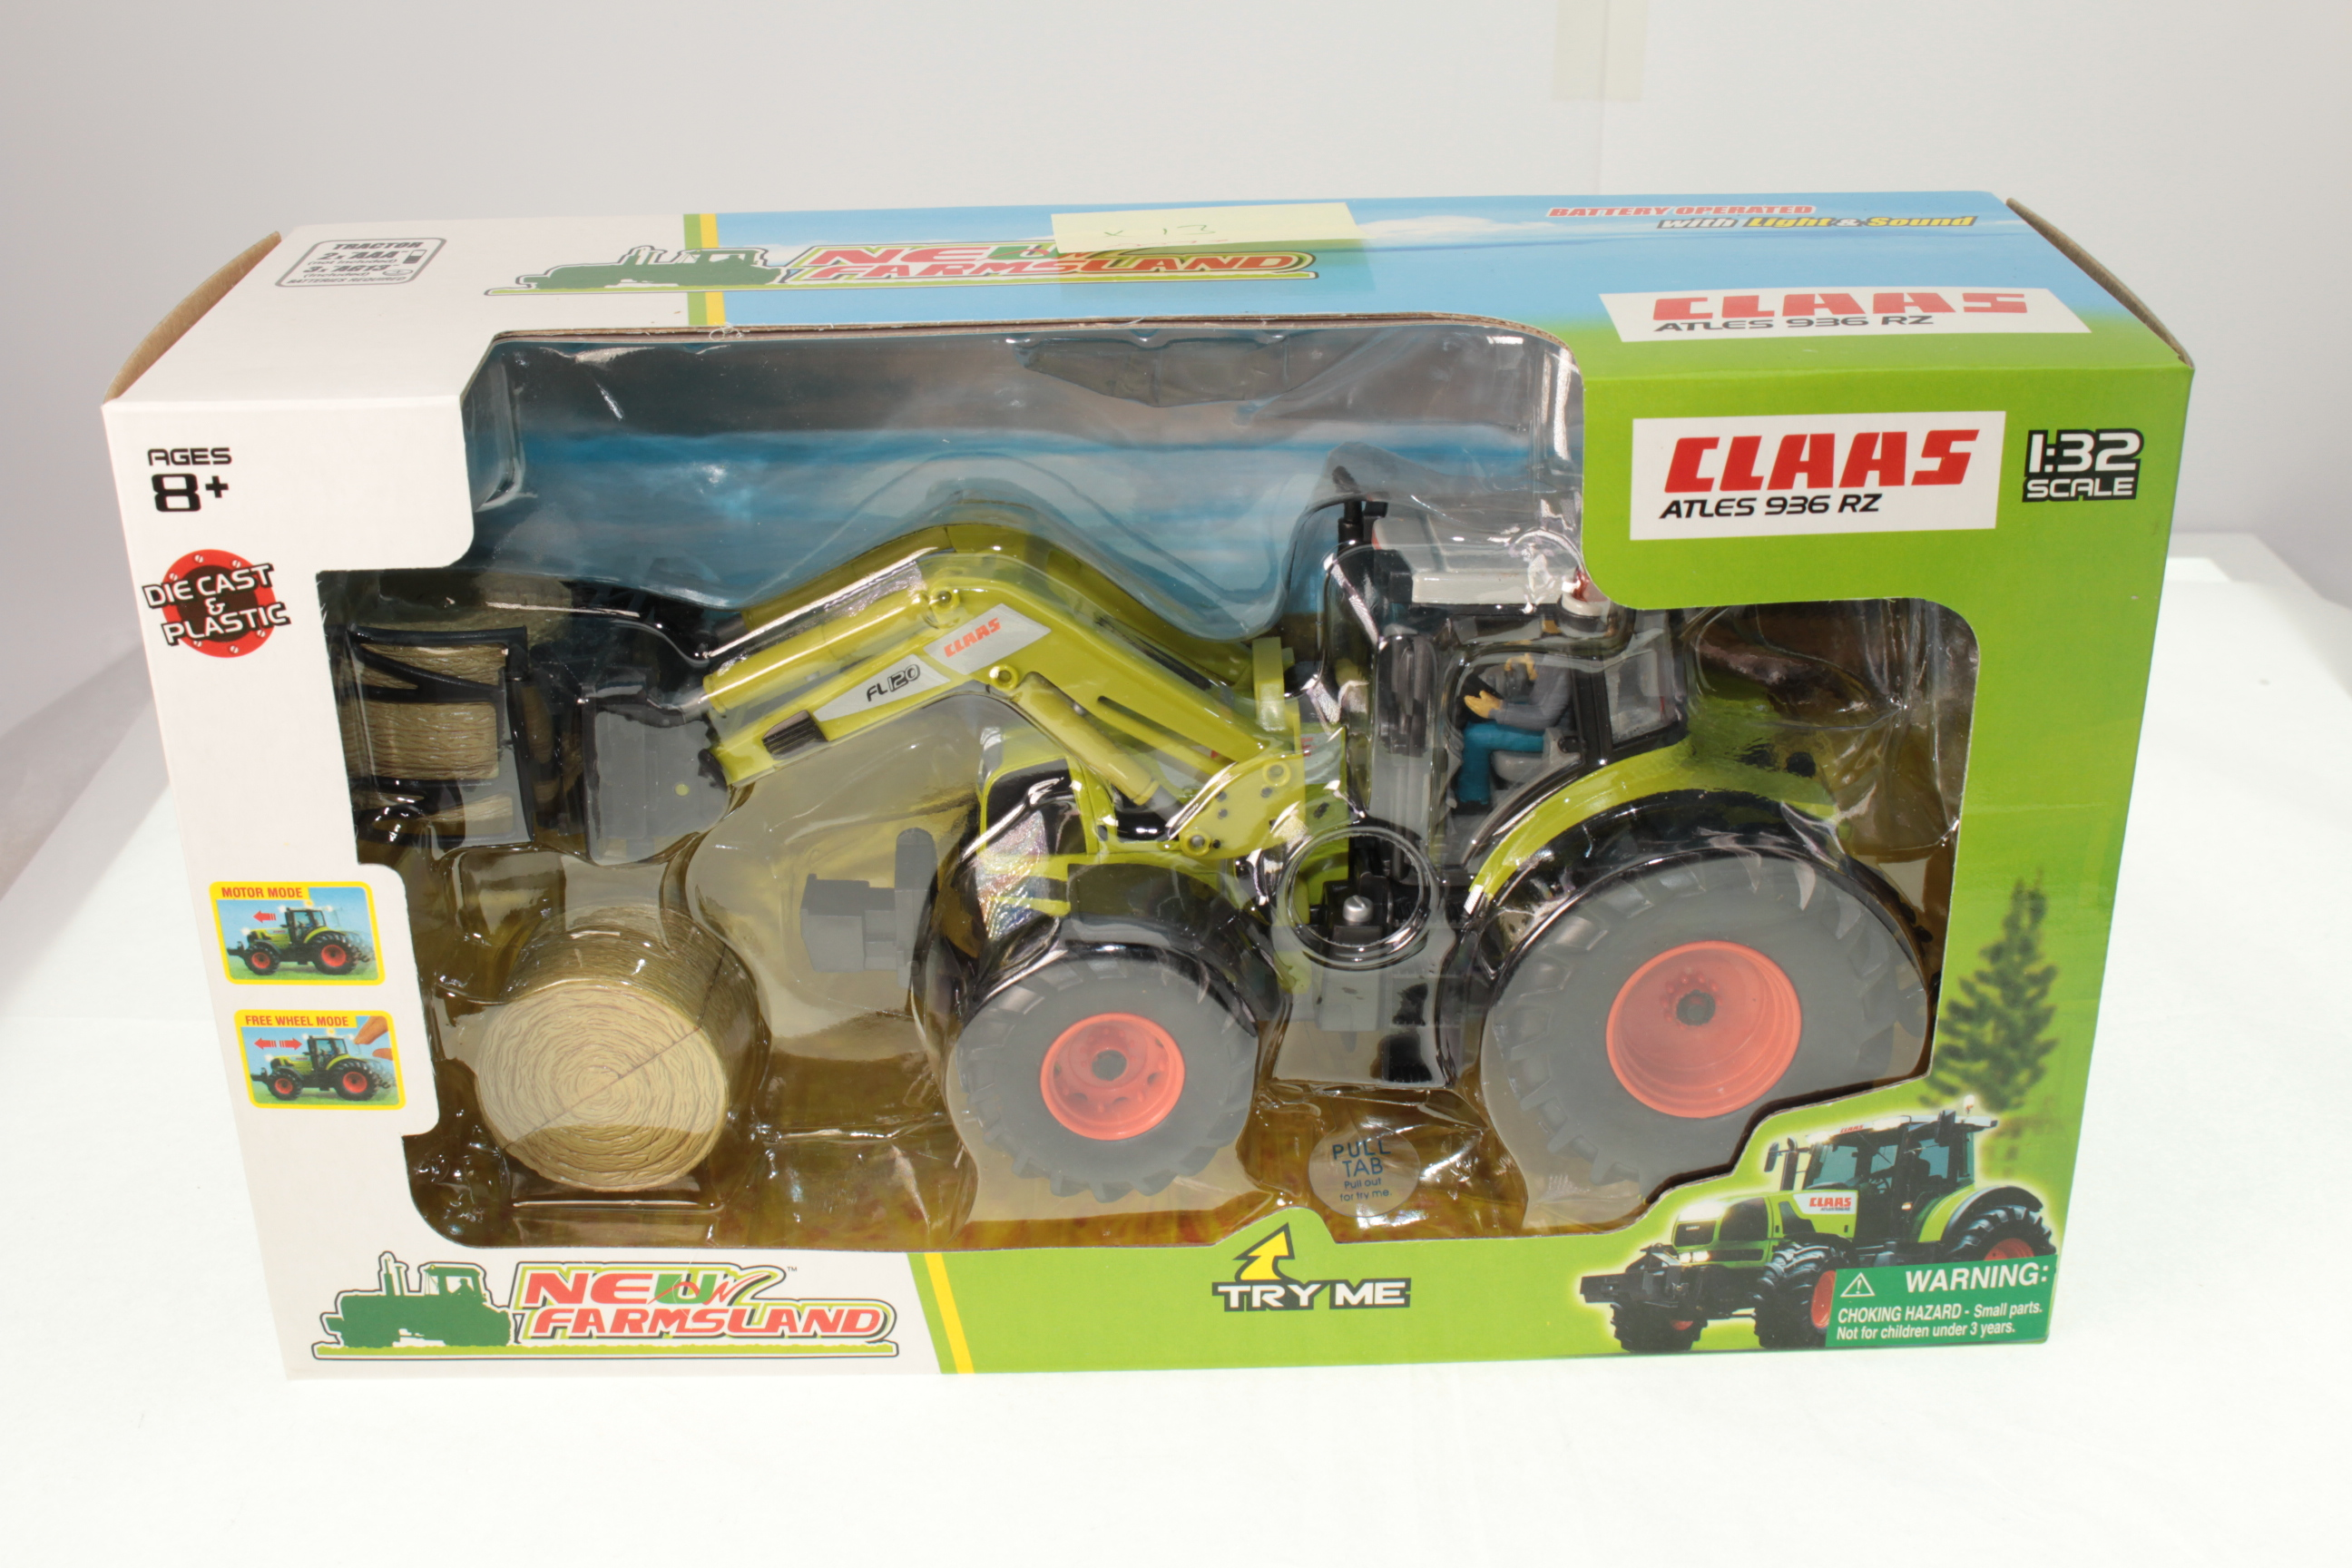 Picture Gallery for New Farmsland 72134 Claas Atles 936 RZ